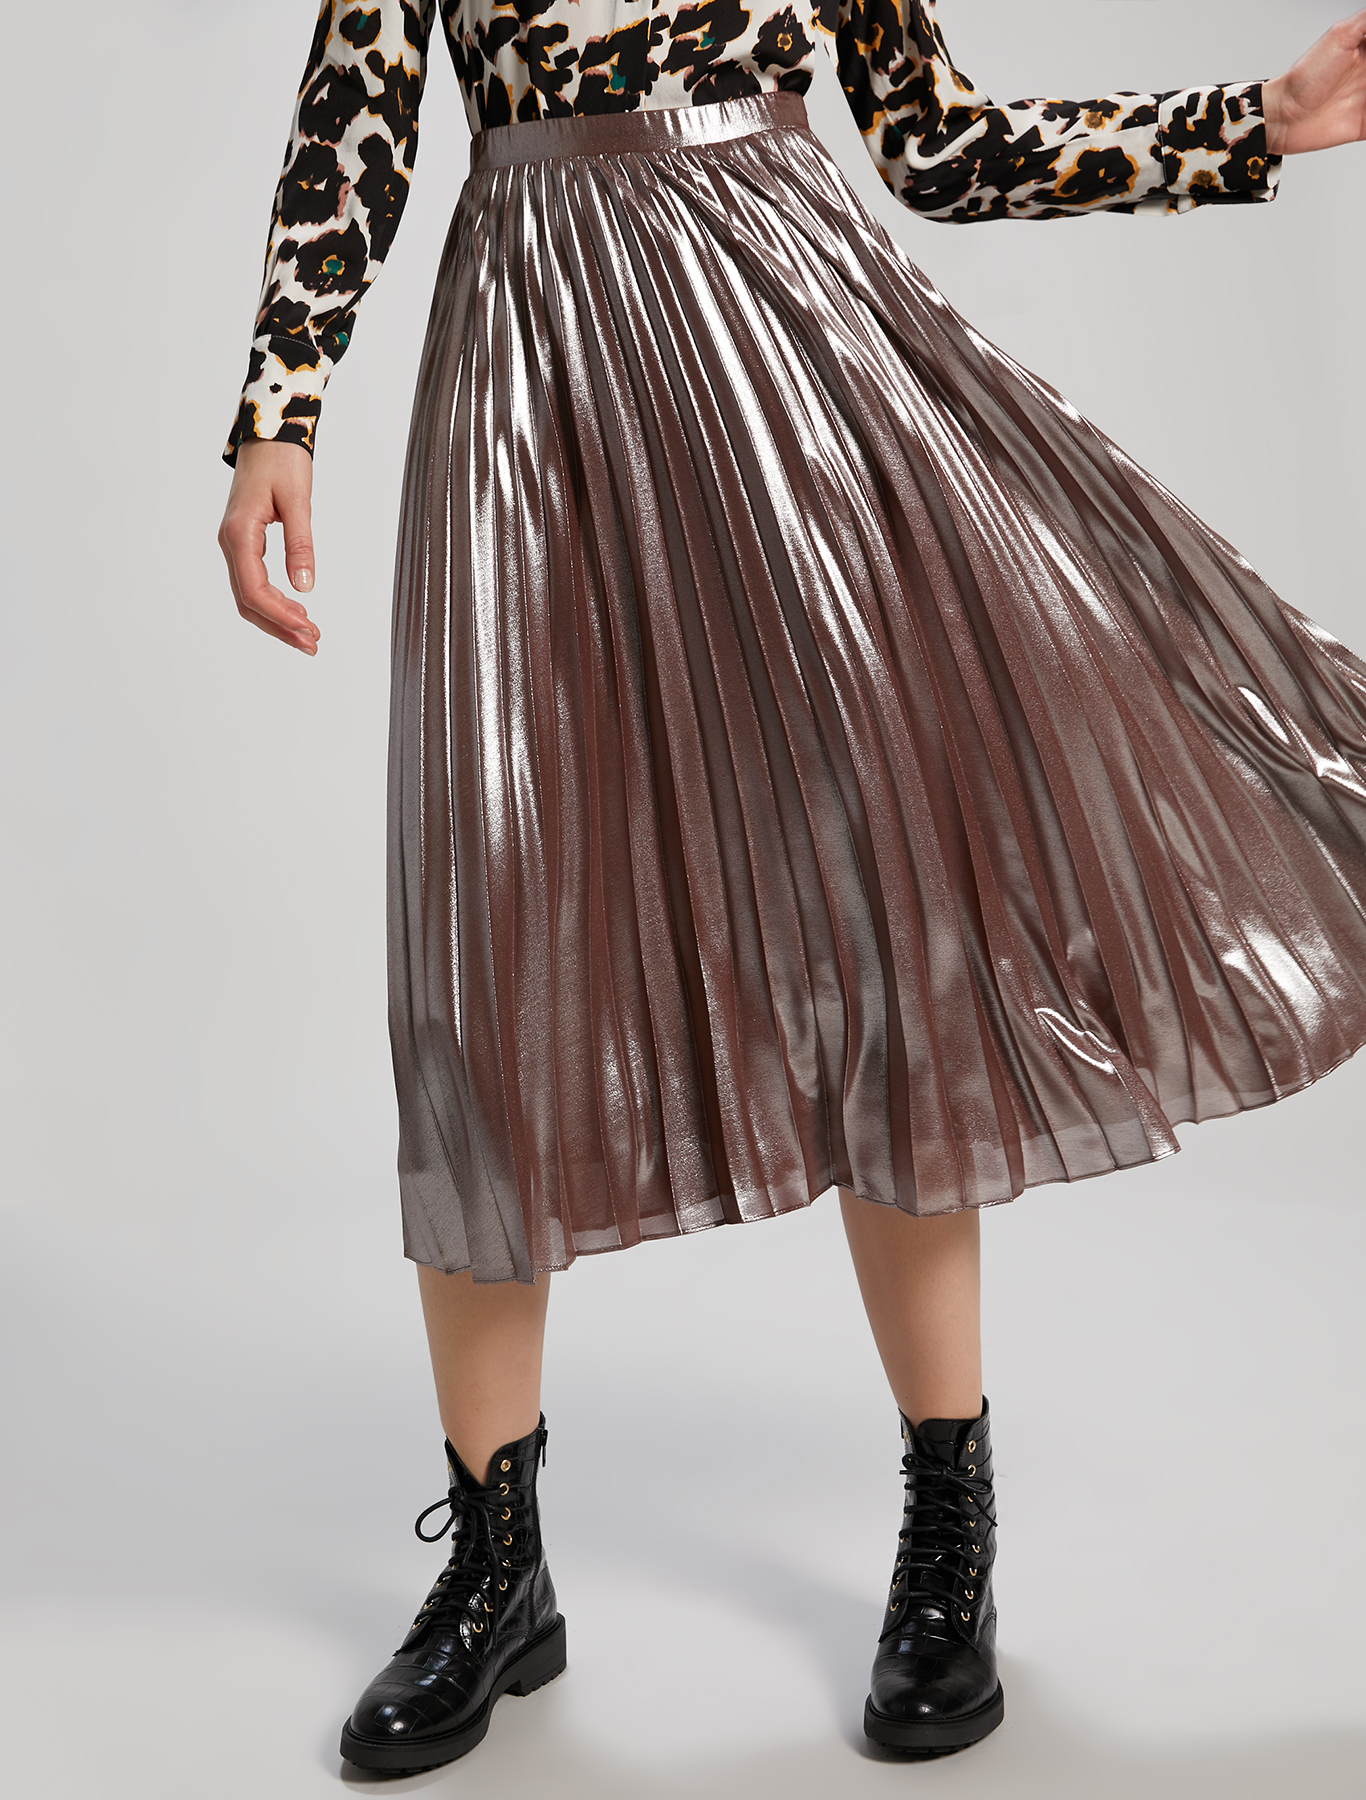 Skirt in metallic georgette - cocoa - pennyblack